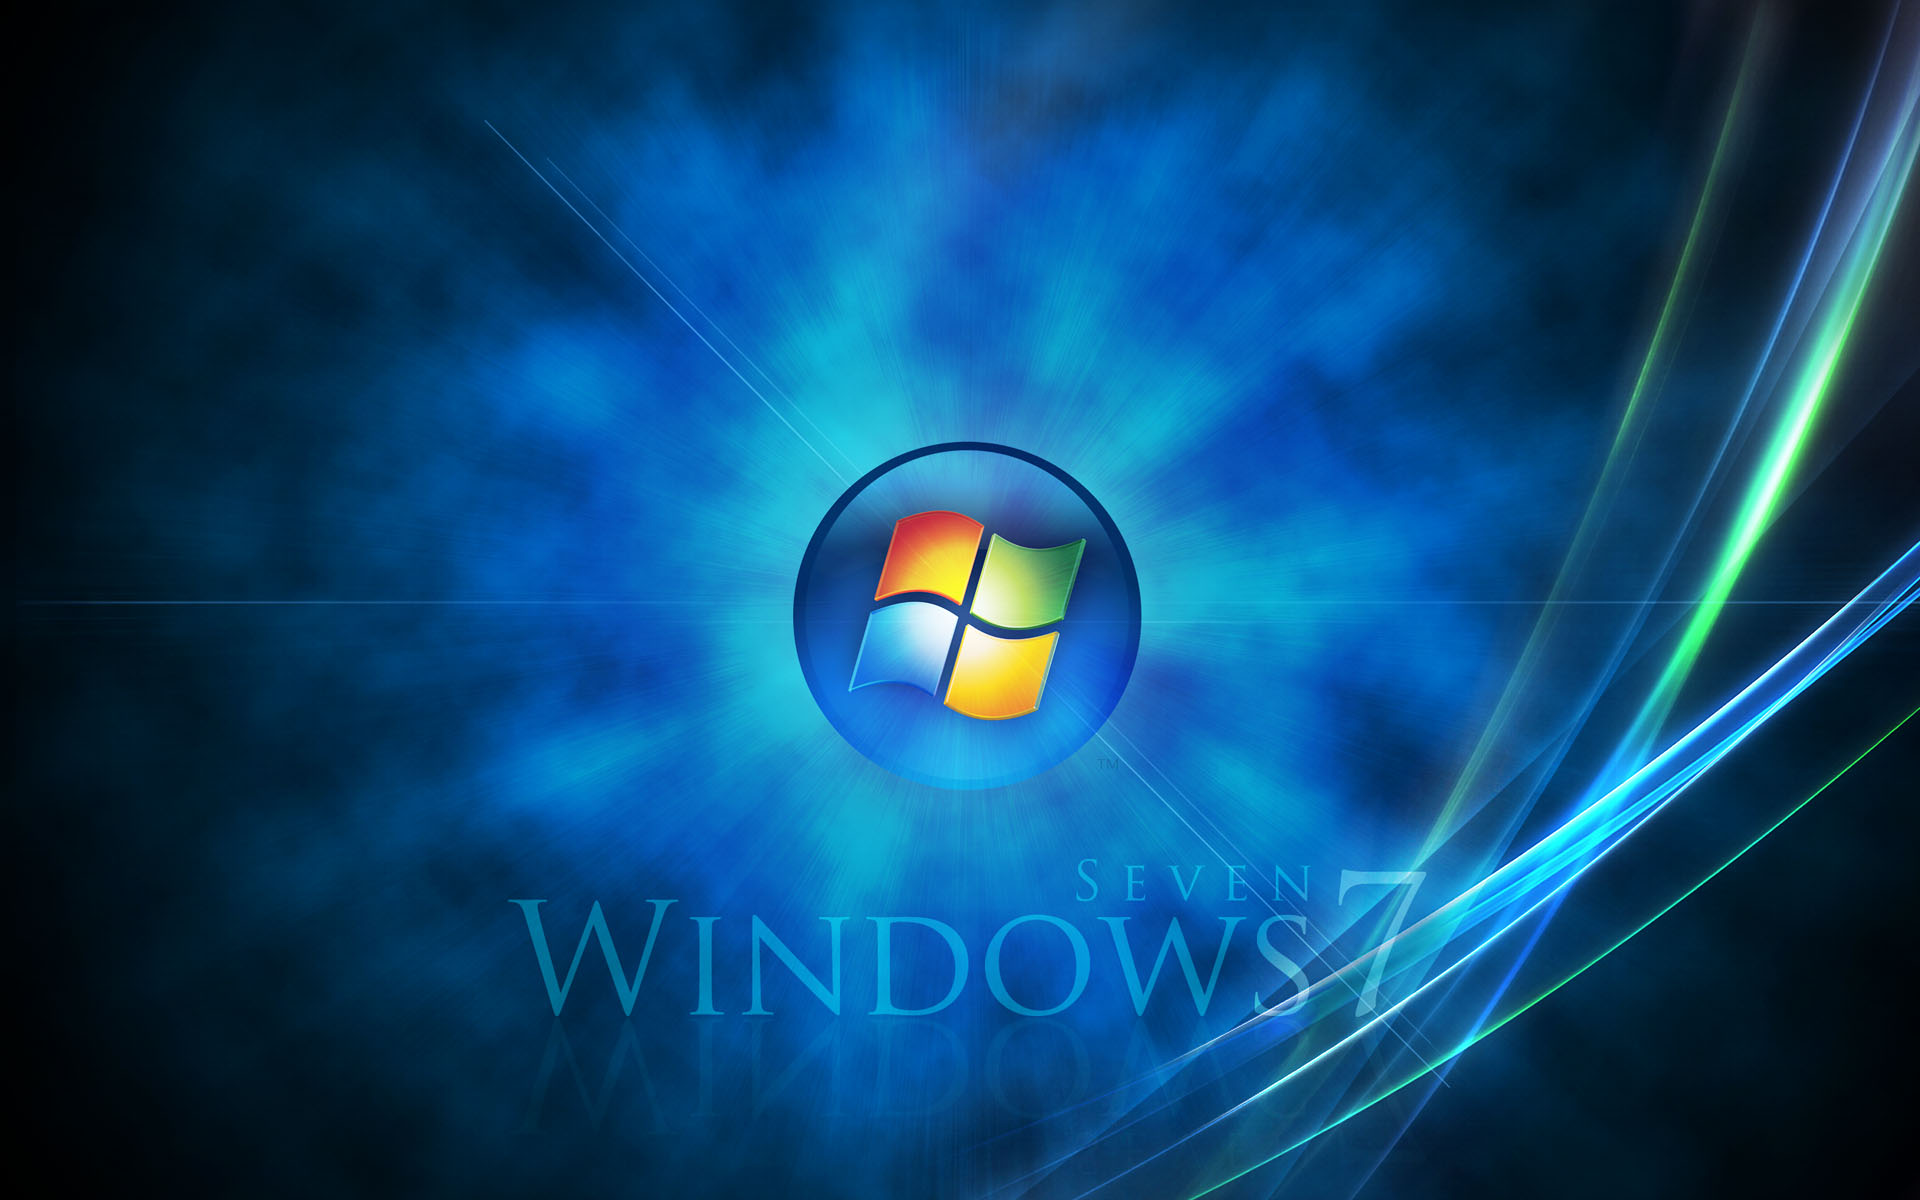 Windows 7 1920x1200 223KB Компьютеры